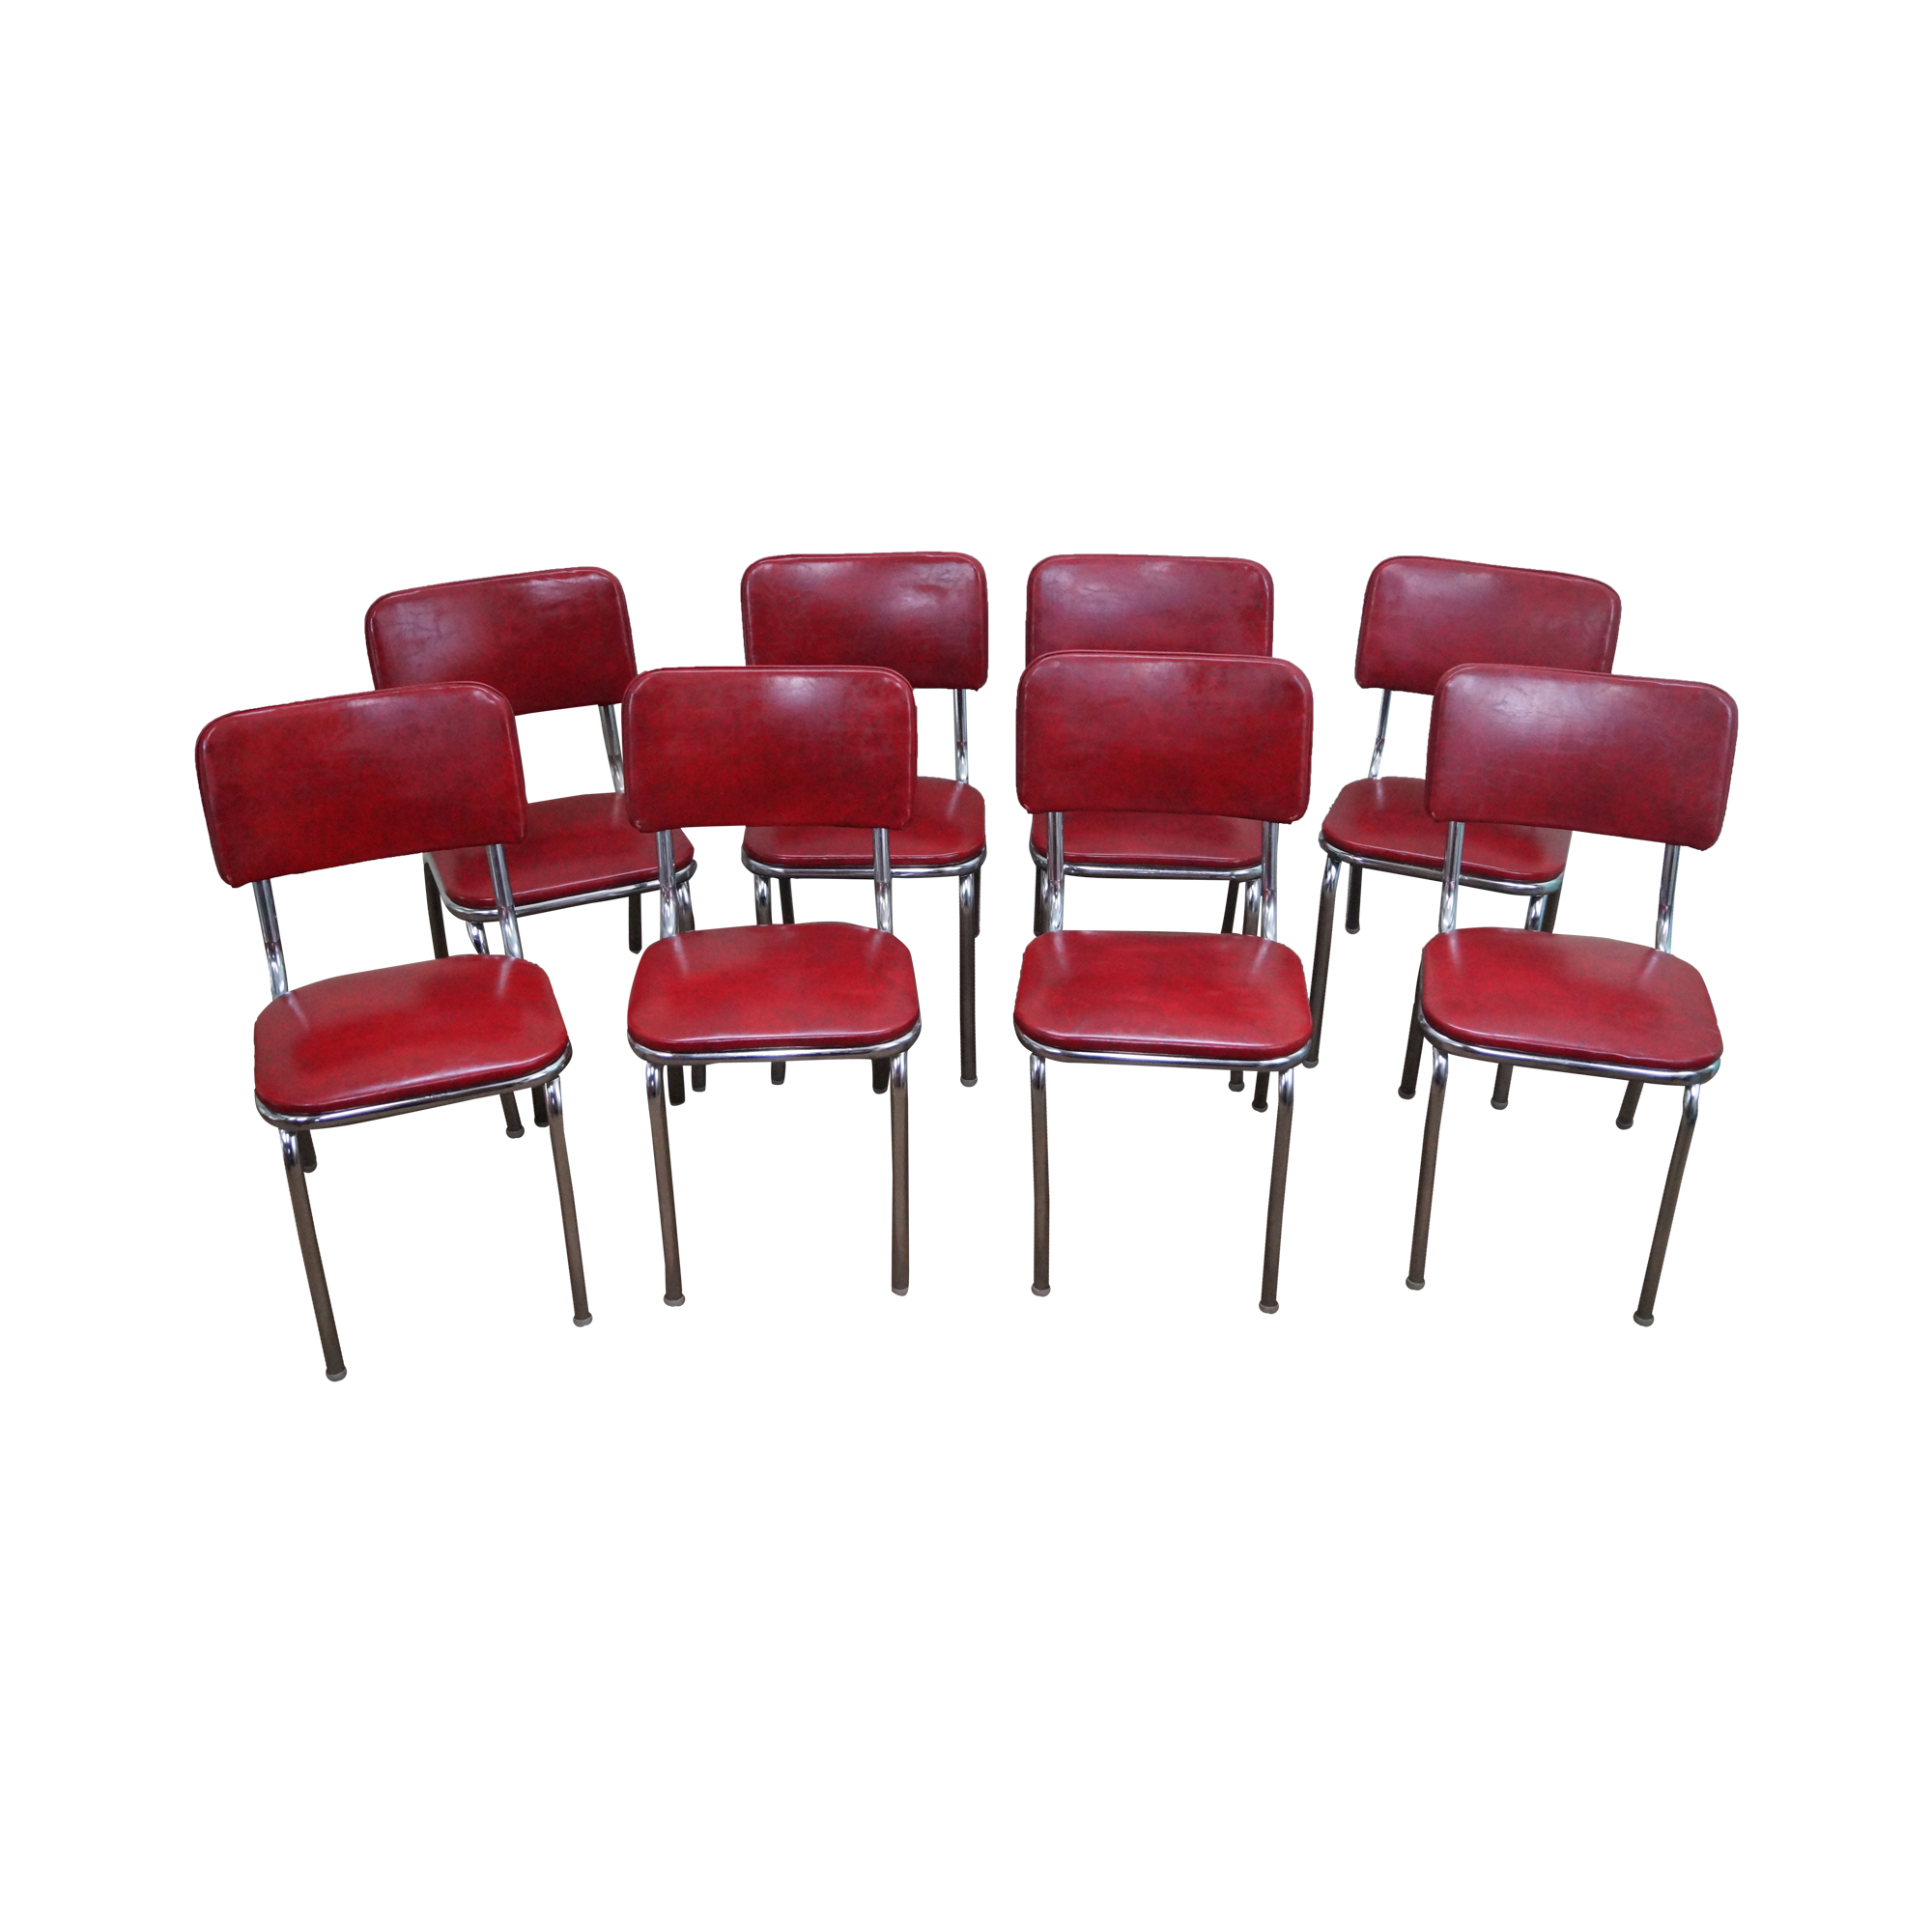 1950s Vintage Chrome & Red Vinyl Dining Chairs